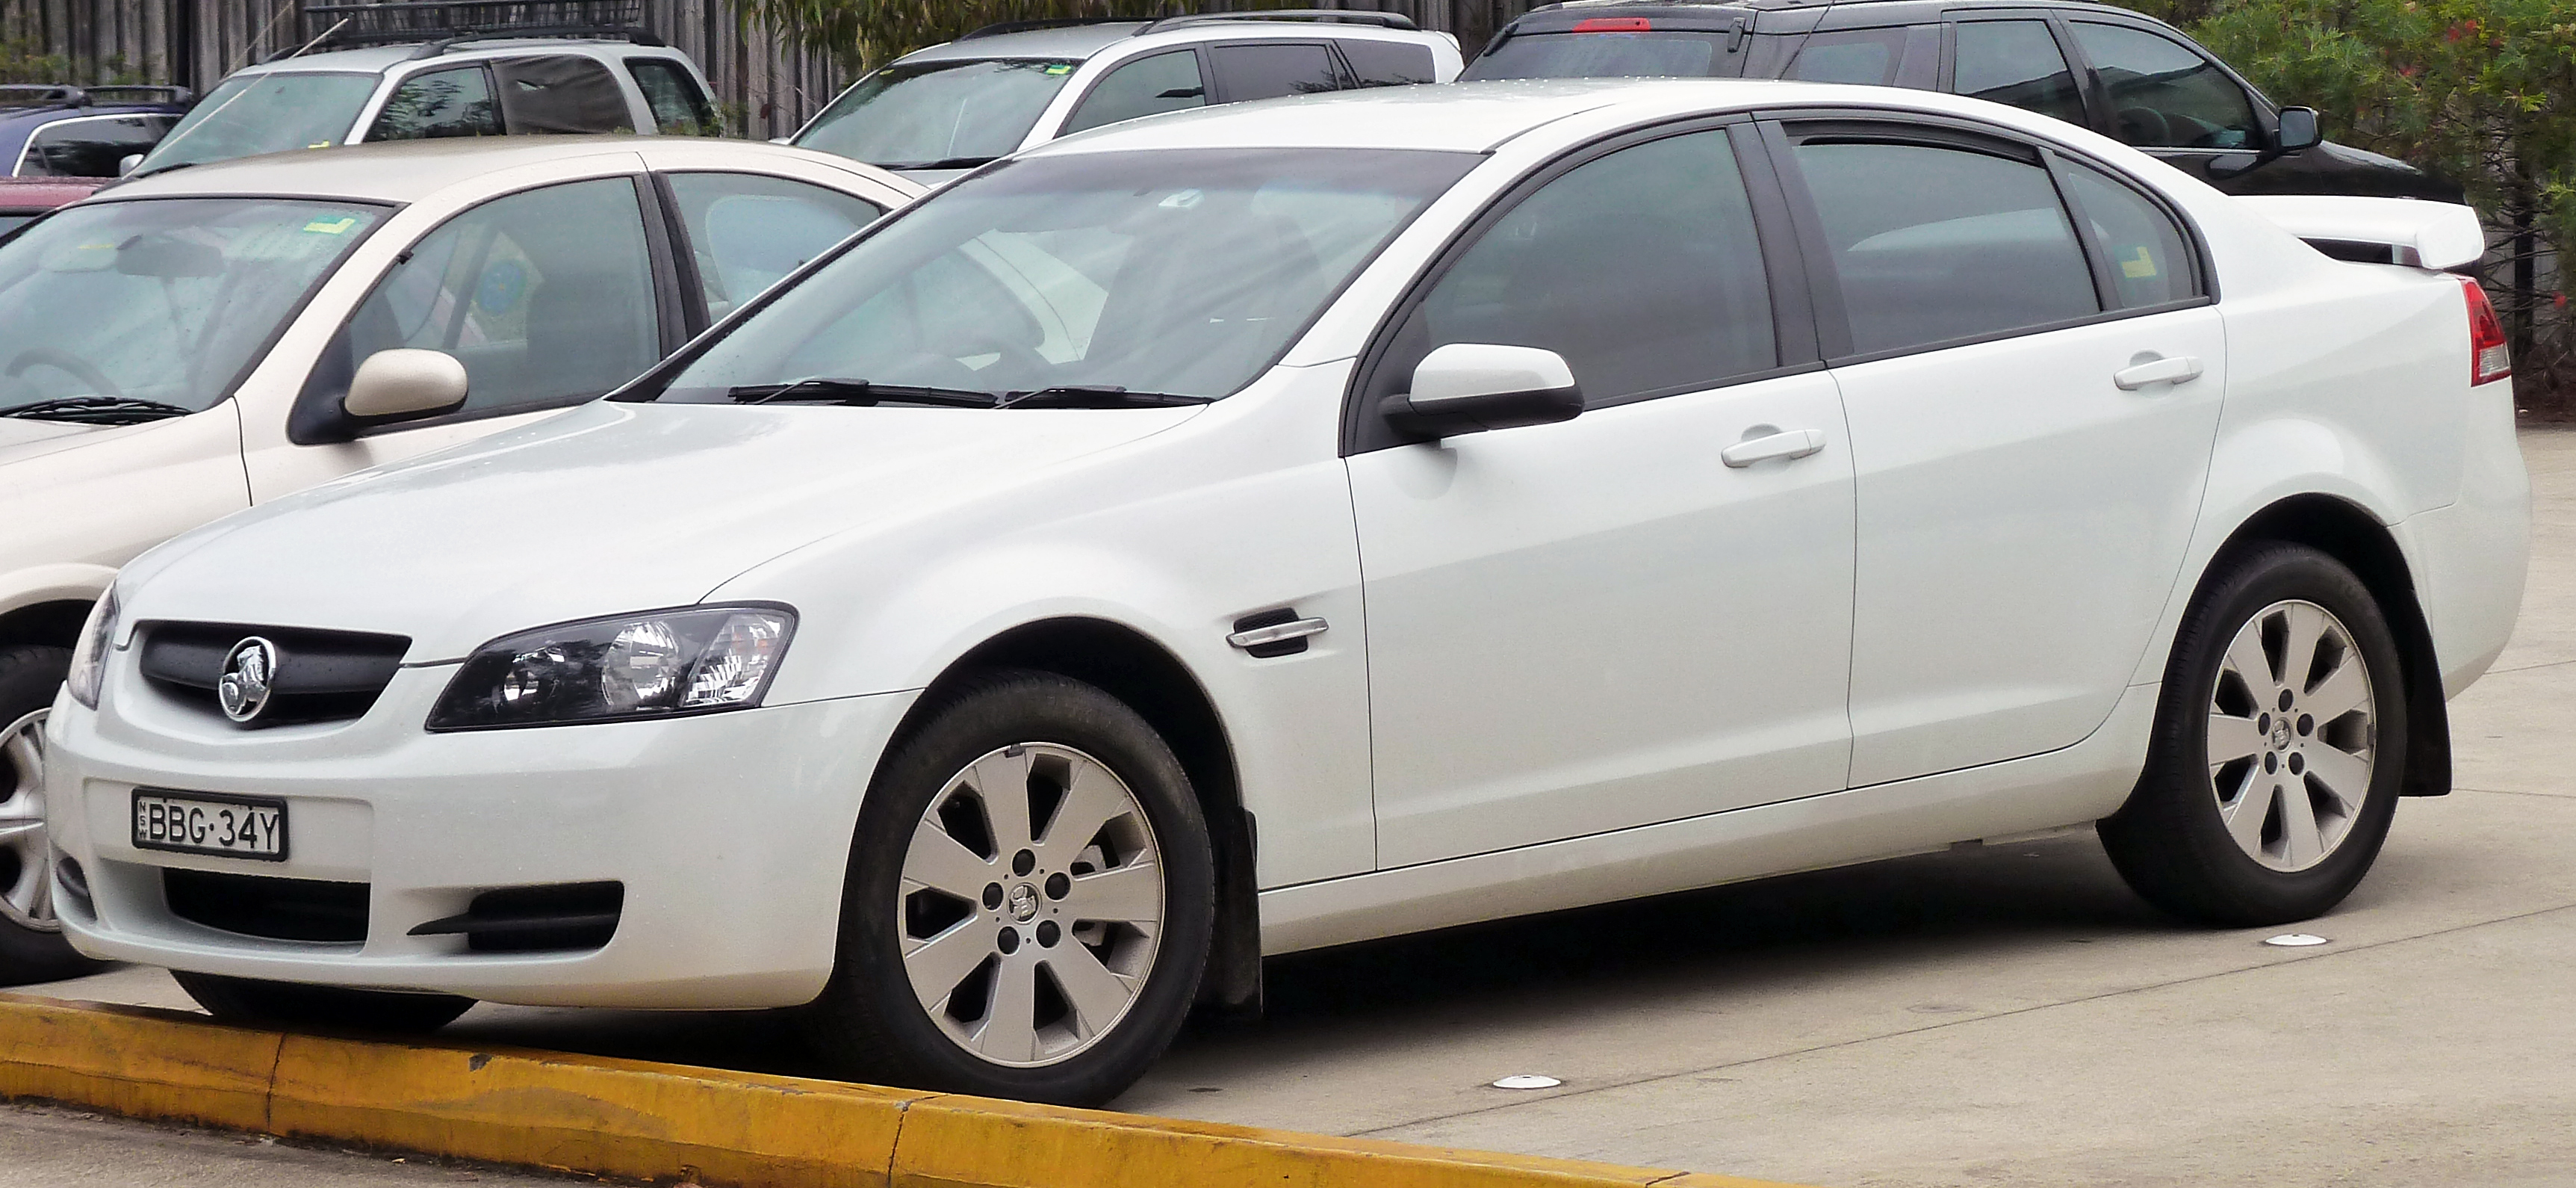 Pictures of holden commodore (vt) 2007 #5